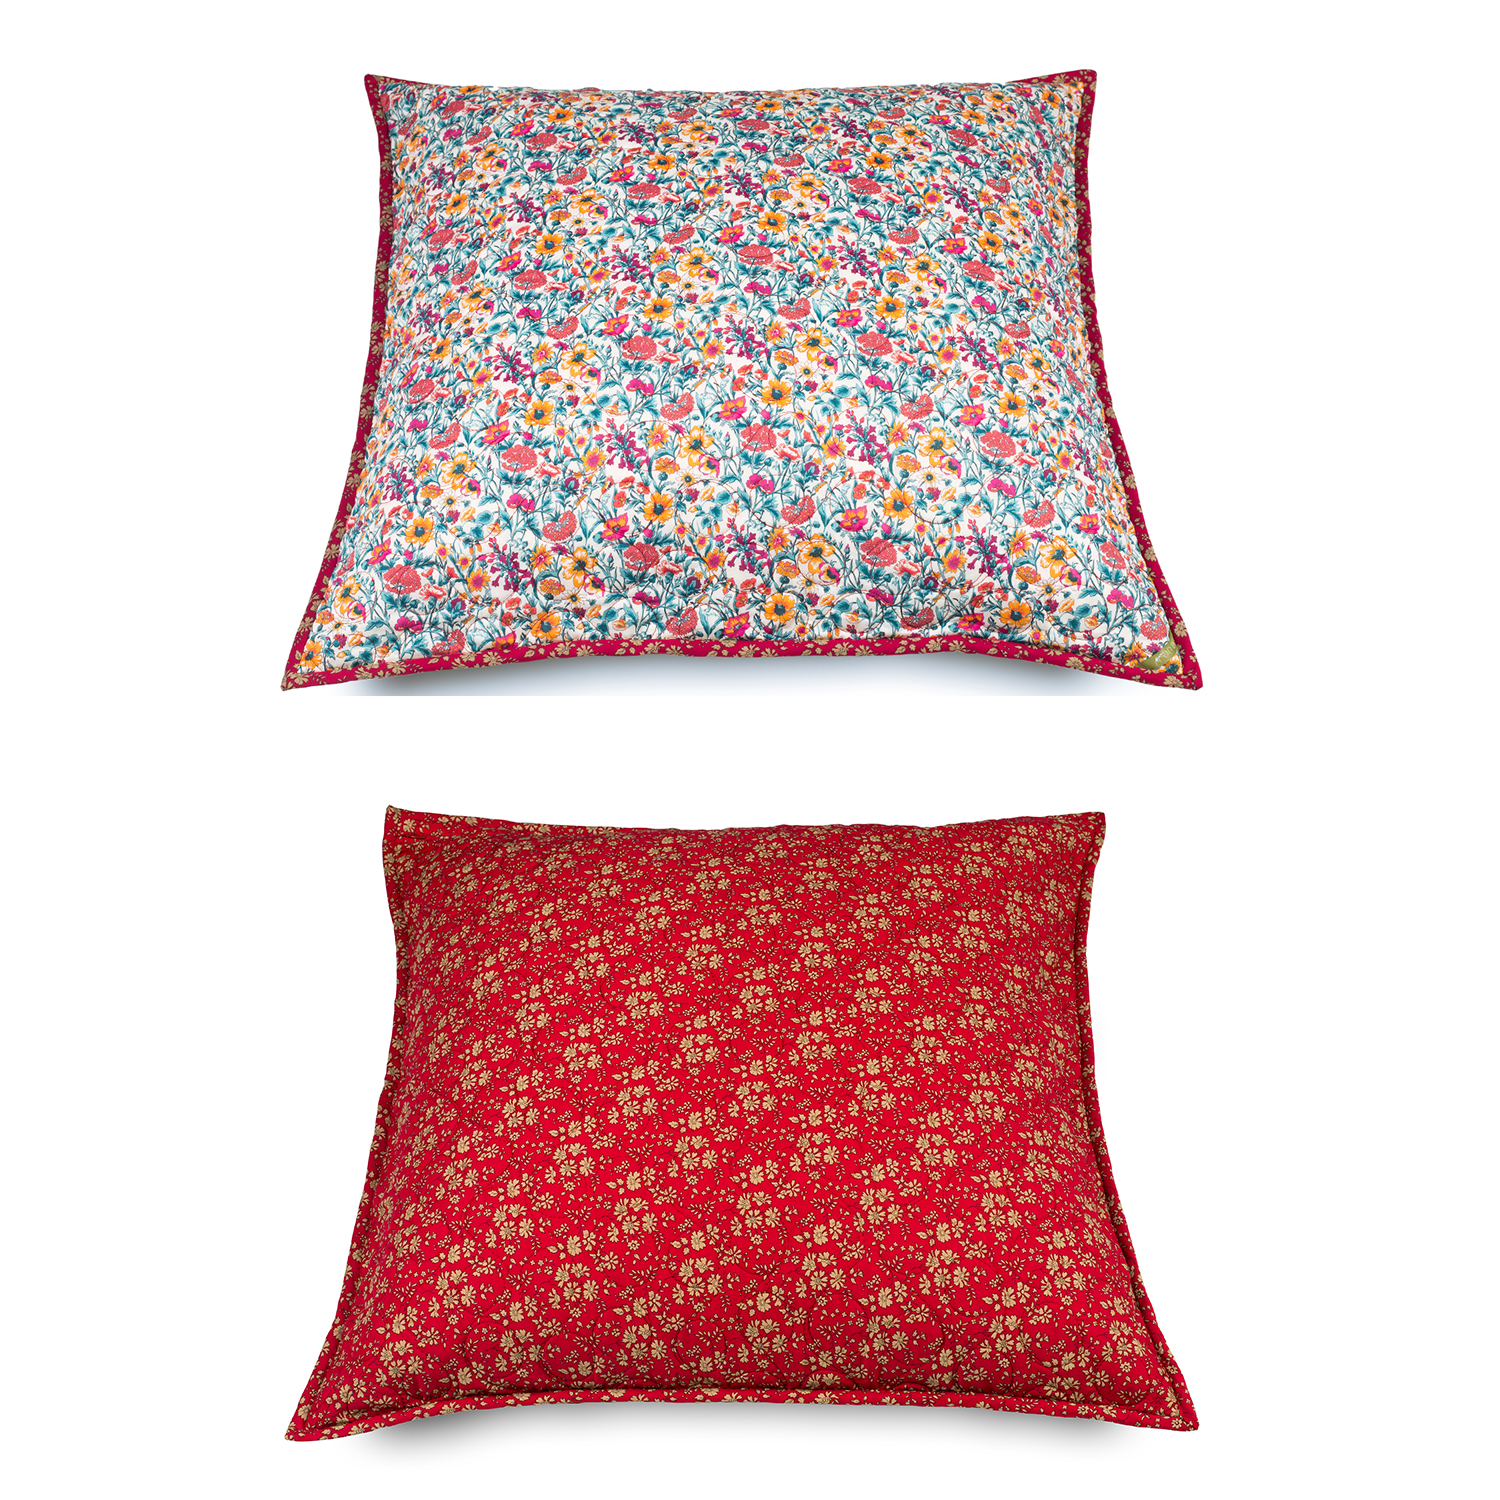 2 CUSHION Covers Liberty Fabrics Prints STAR 1002  1 of 40X40cm and 1 of 60X60cm.